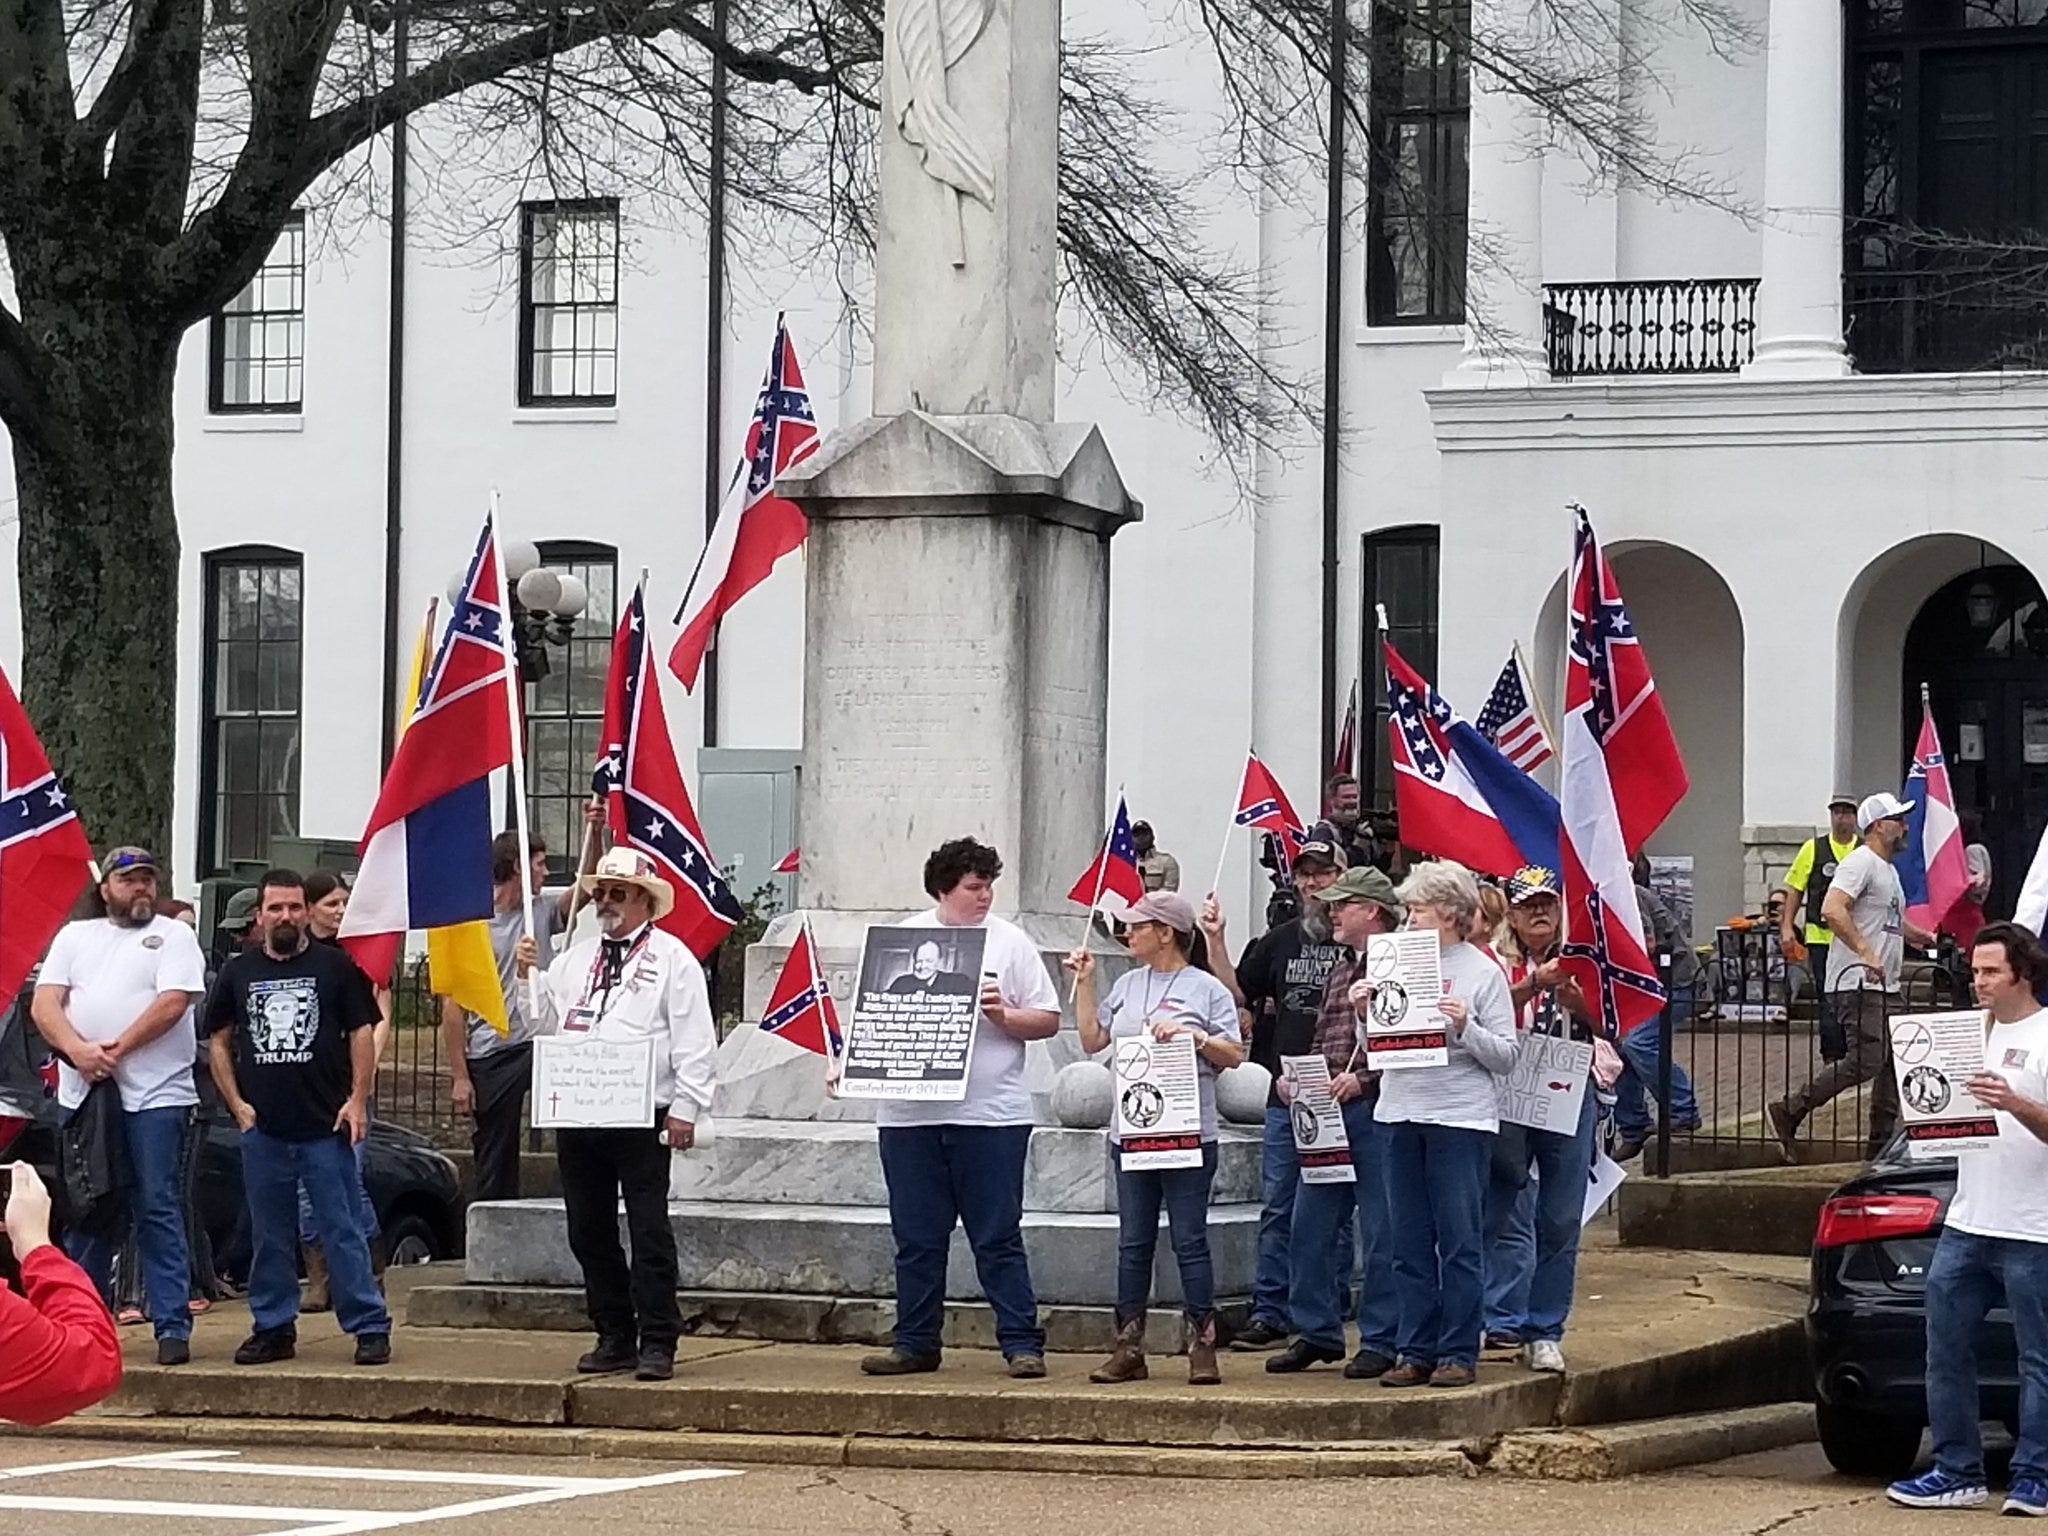 Scenes from pro-Confederate rally:  Group marches to Confederate memorial at Ole Miss | Clarion Ledger